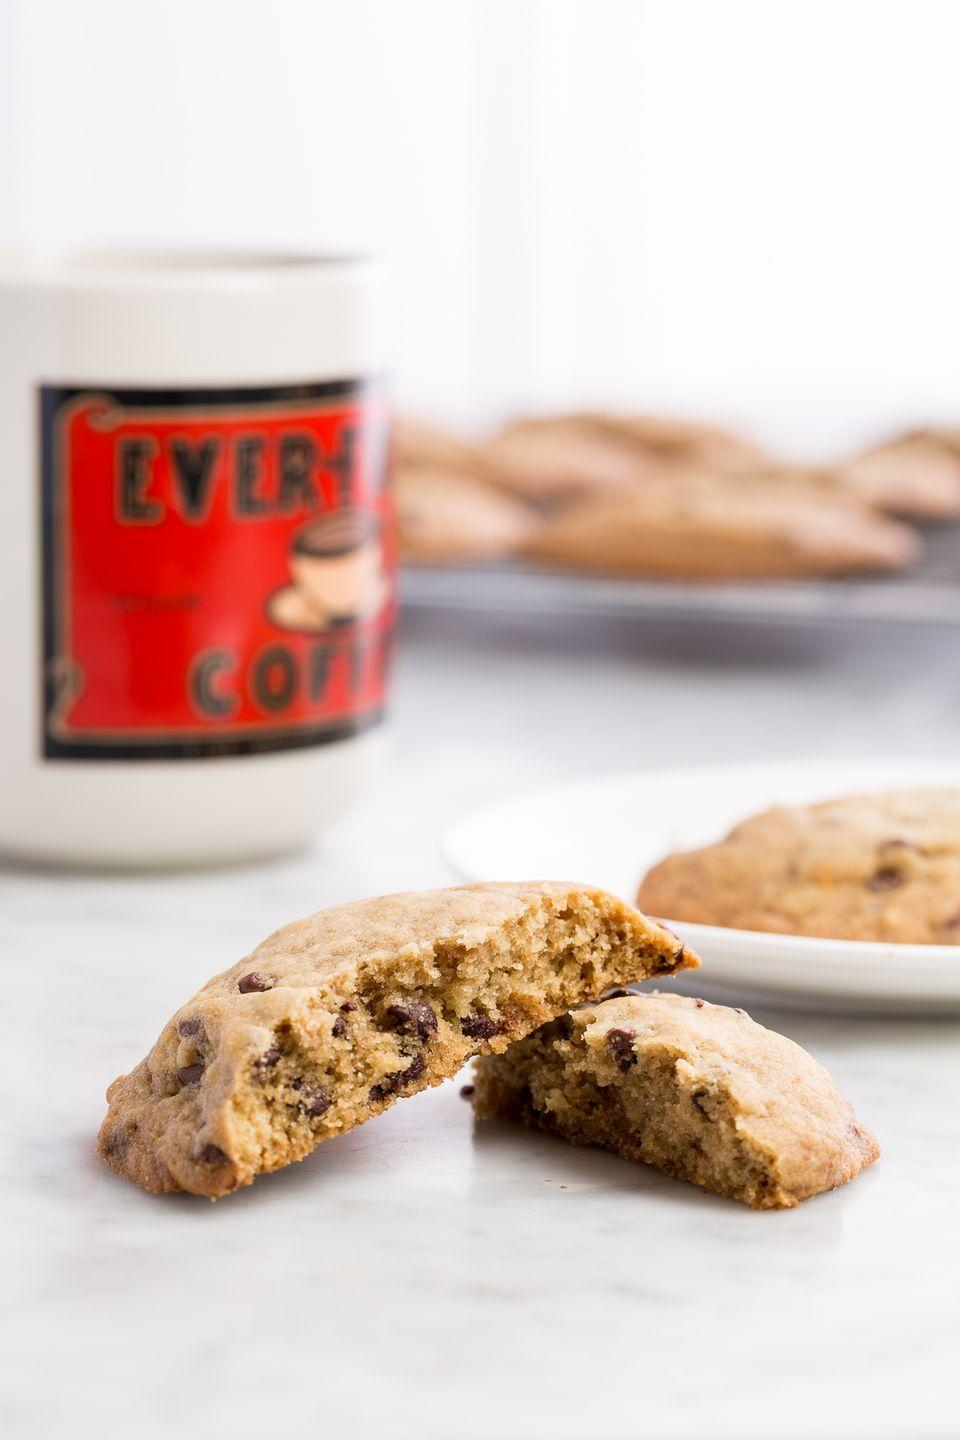 "<p>Mini chocolate chips are a must.</p><p>Get the recipe from <a href=""/cooking/recipe-ideas/recipes/a46165/copycat-panera-chocolate-chip-cookies-recipe/"" data-ylk=""slk:Delish"" class=""link rapid-noclick-resp"">Delish</a>.</p>"